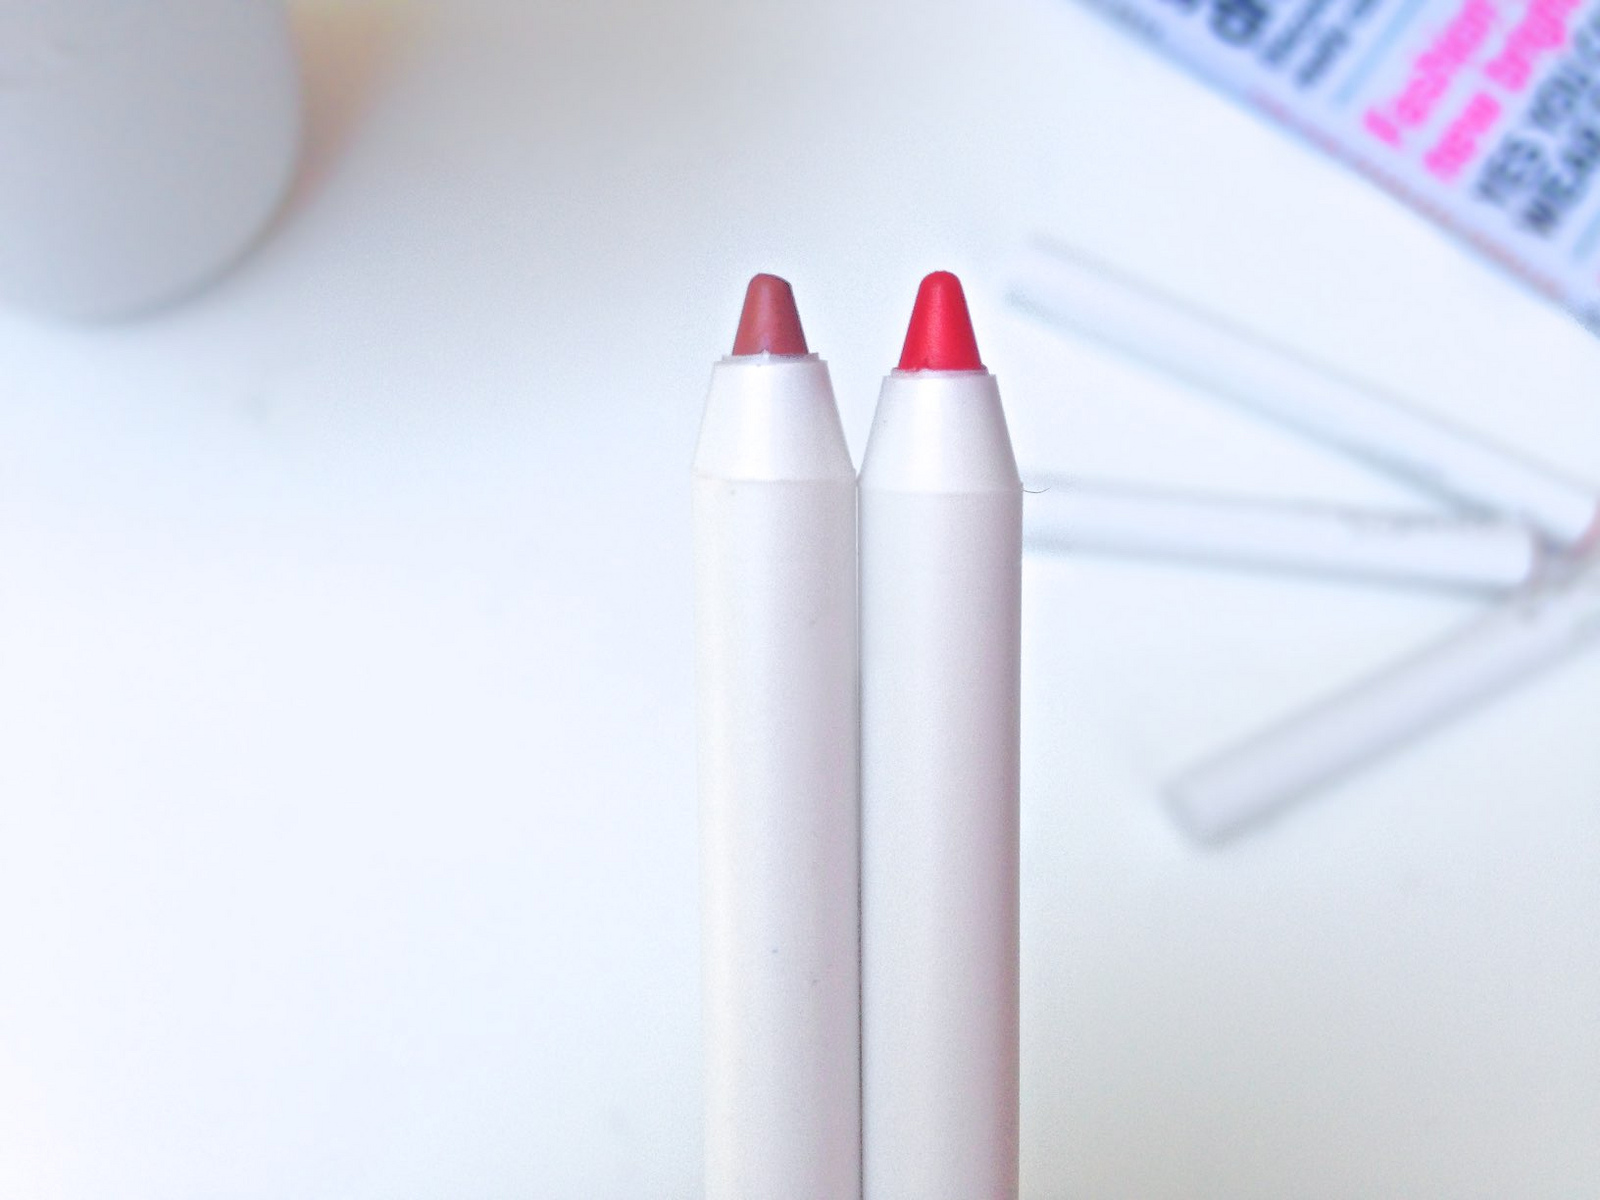 Colourpop Lippie Stix/Pencils Swatches + Review